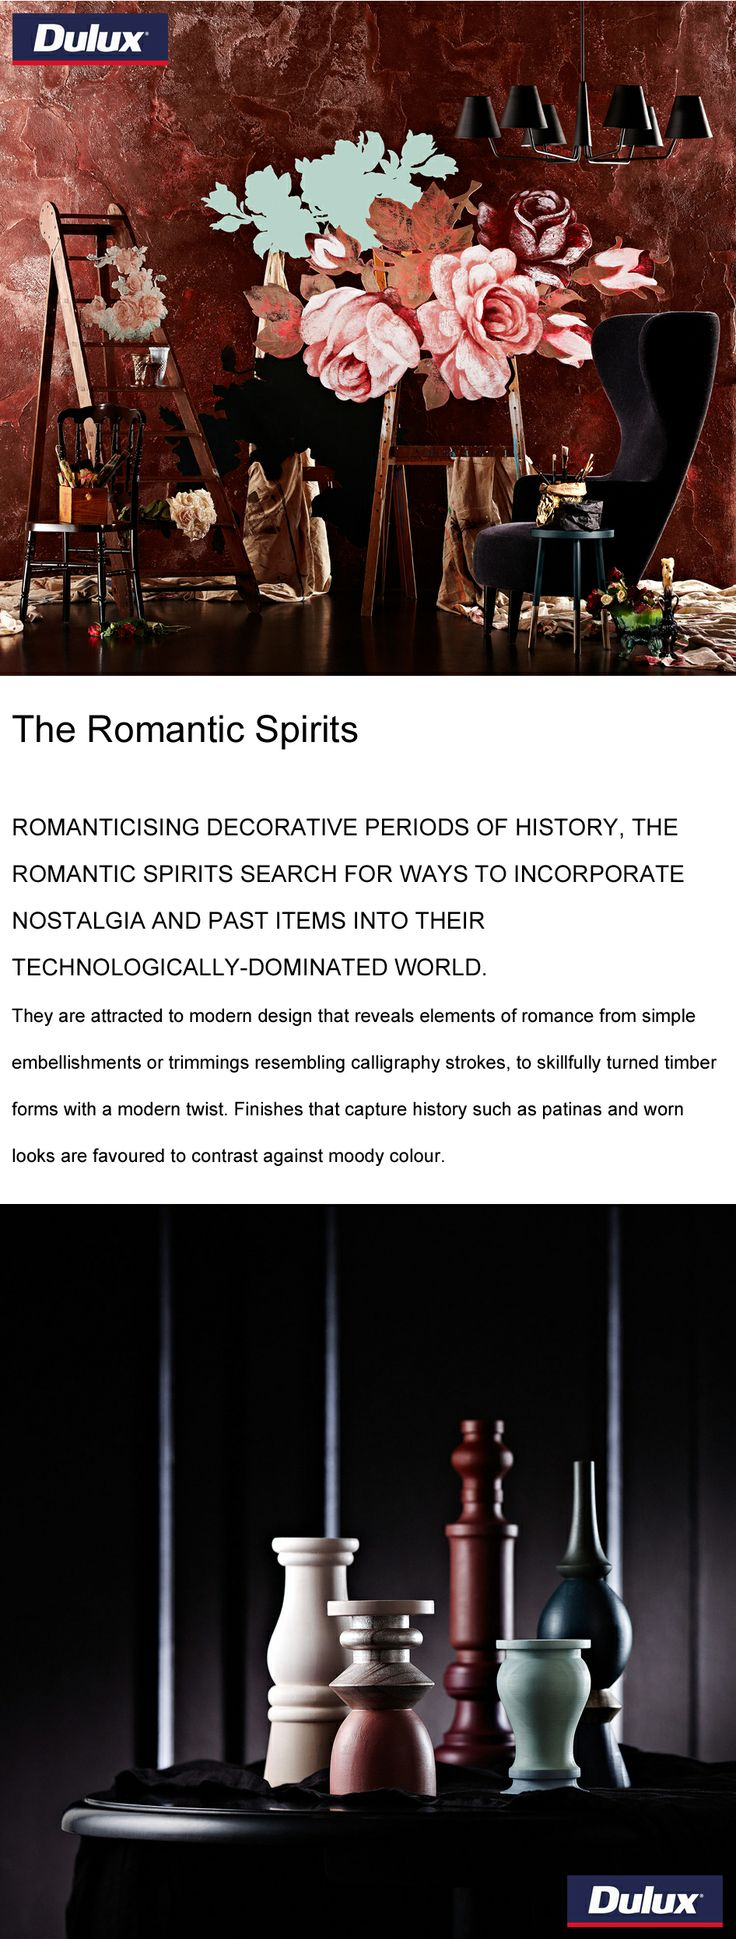 """""""The Romantic Spirits"""" colour forecast from Dulux for 2014.   www.lahood.co.nz"""